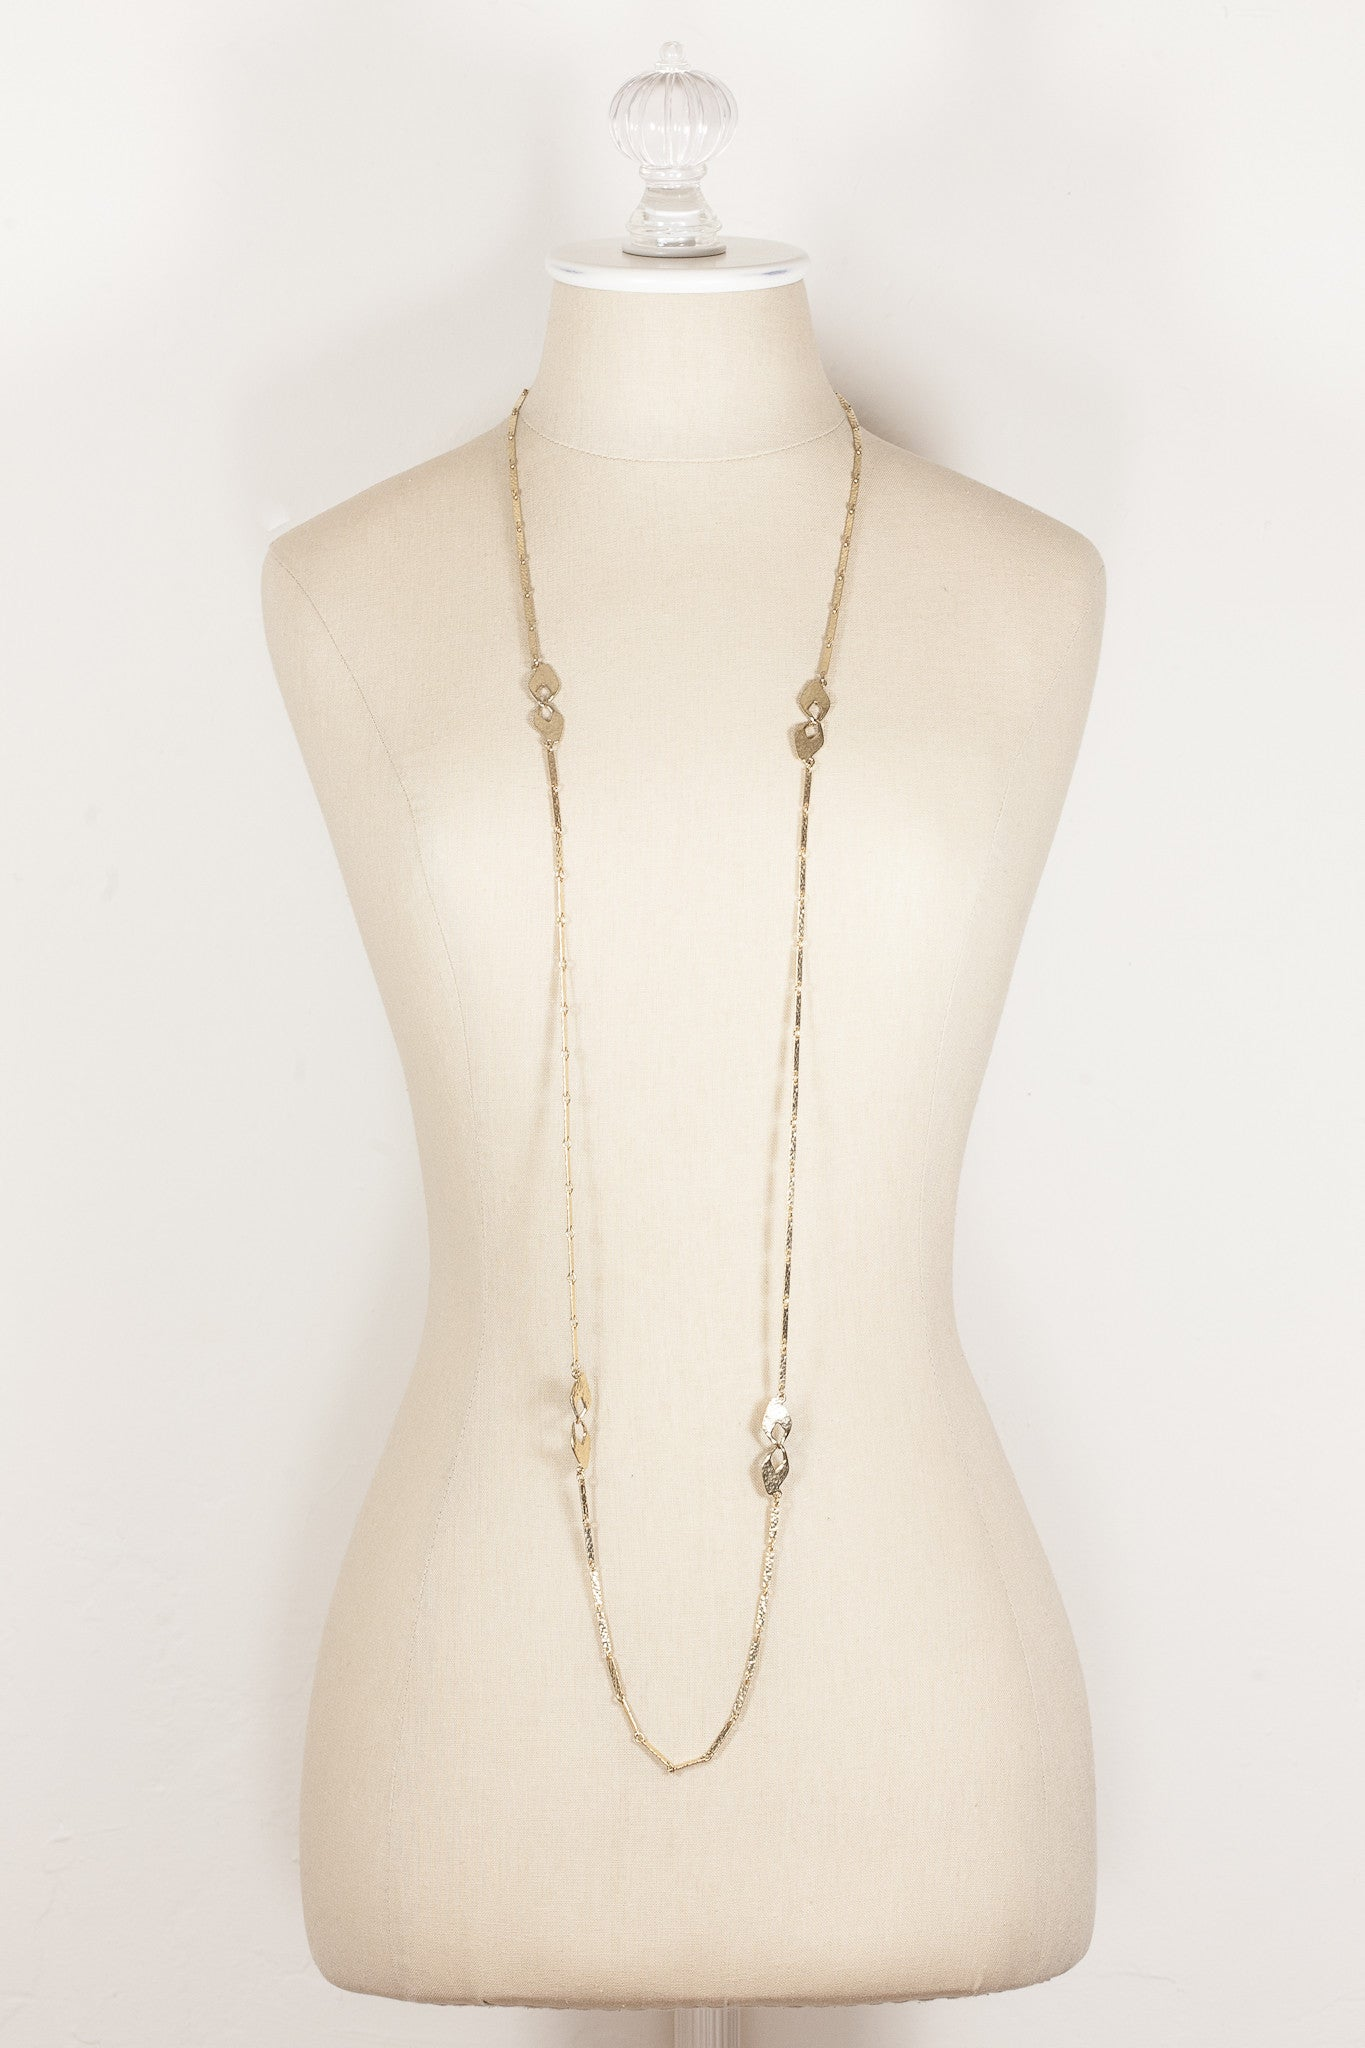 70's__Vintage__Hammered Extra Long Chain Necklace